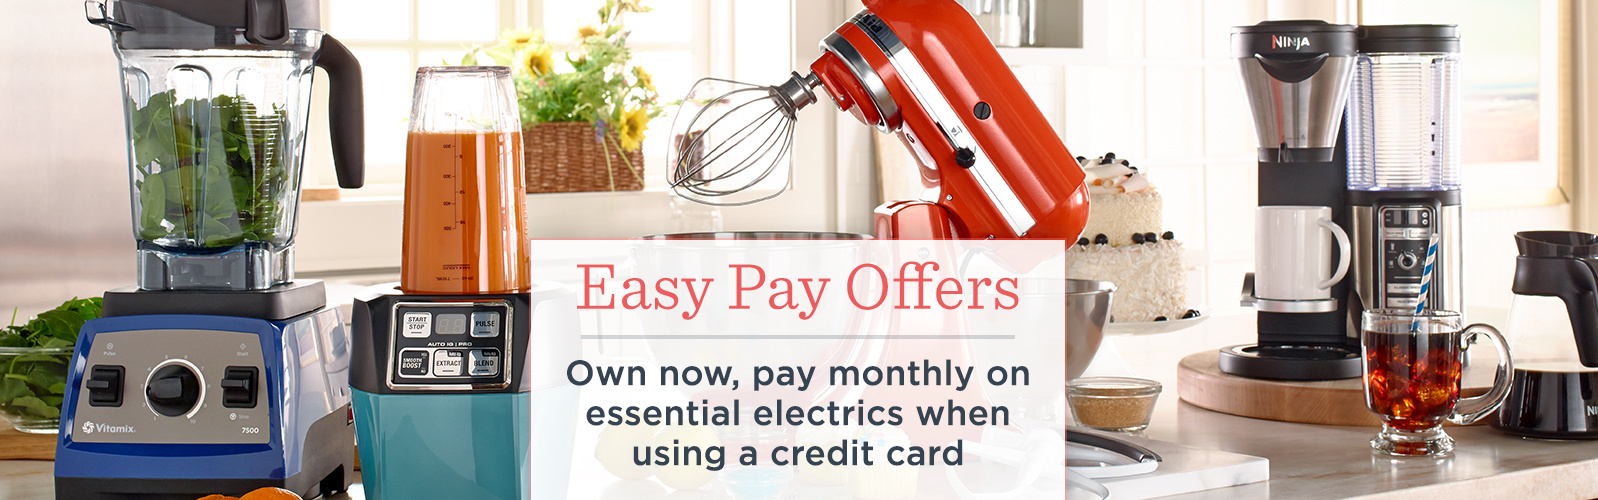 Easy Pay Offers. Own now, pay monthly on essential electrics when using a credit card